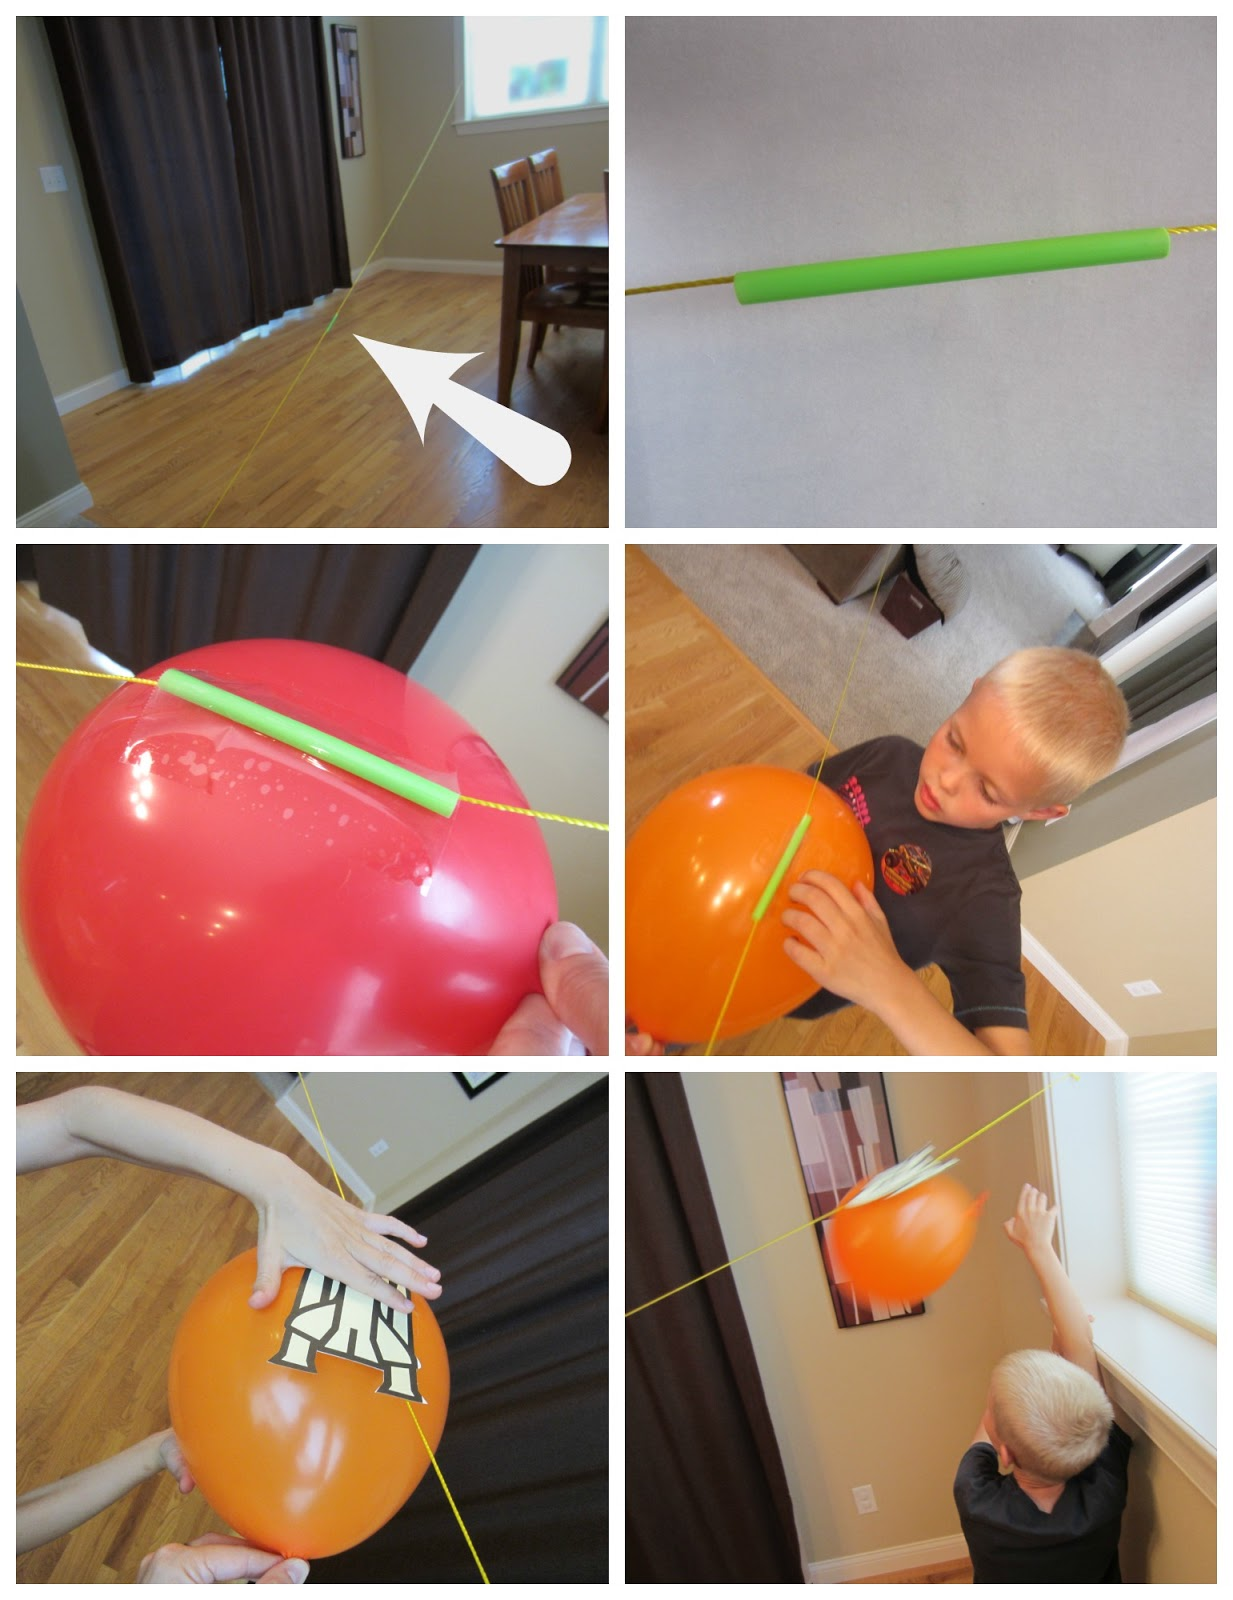 Relentlessly fun deceptively educational 2 air powered rockets